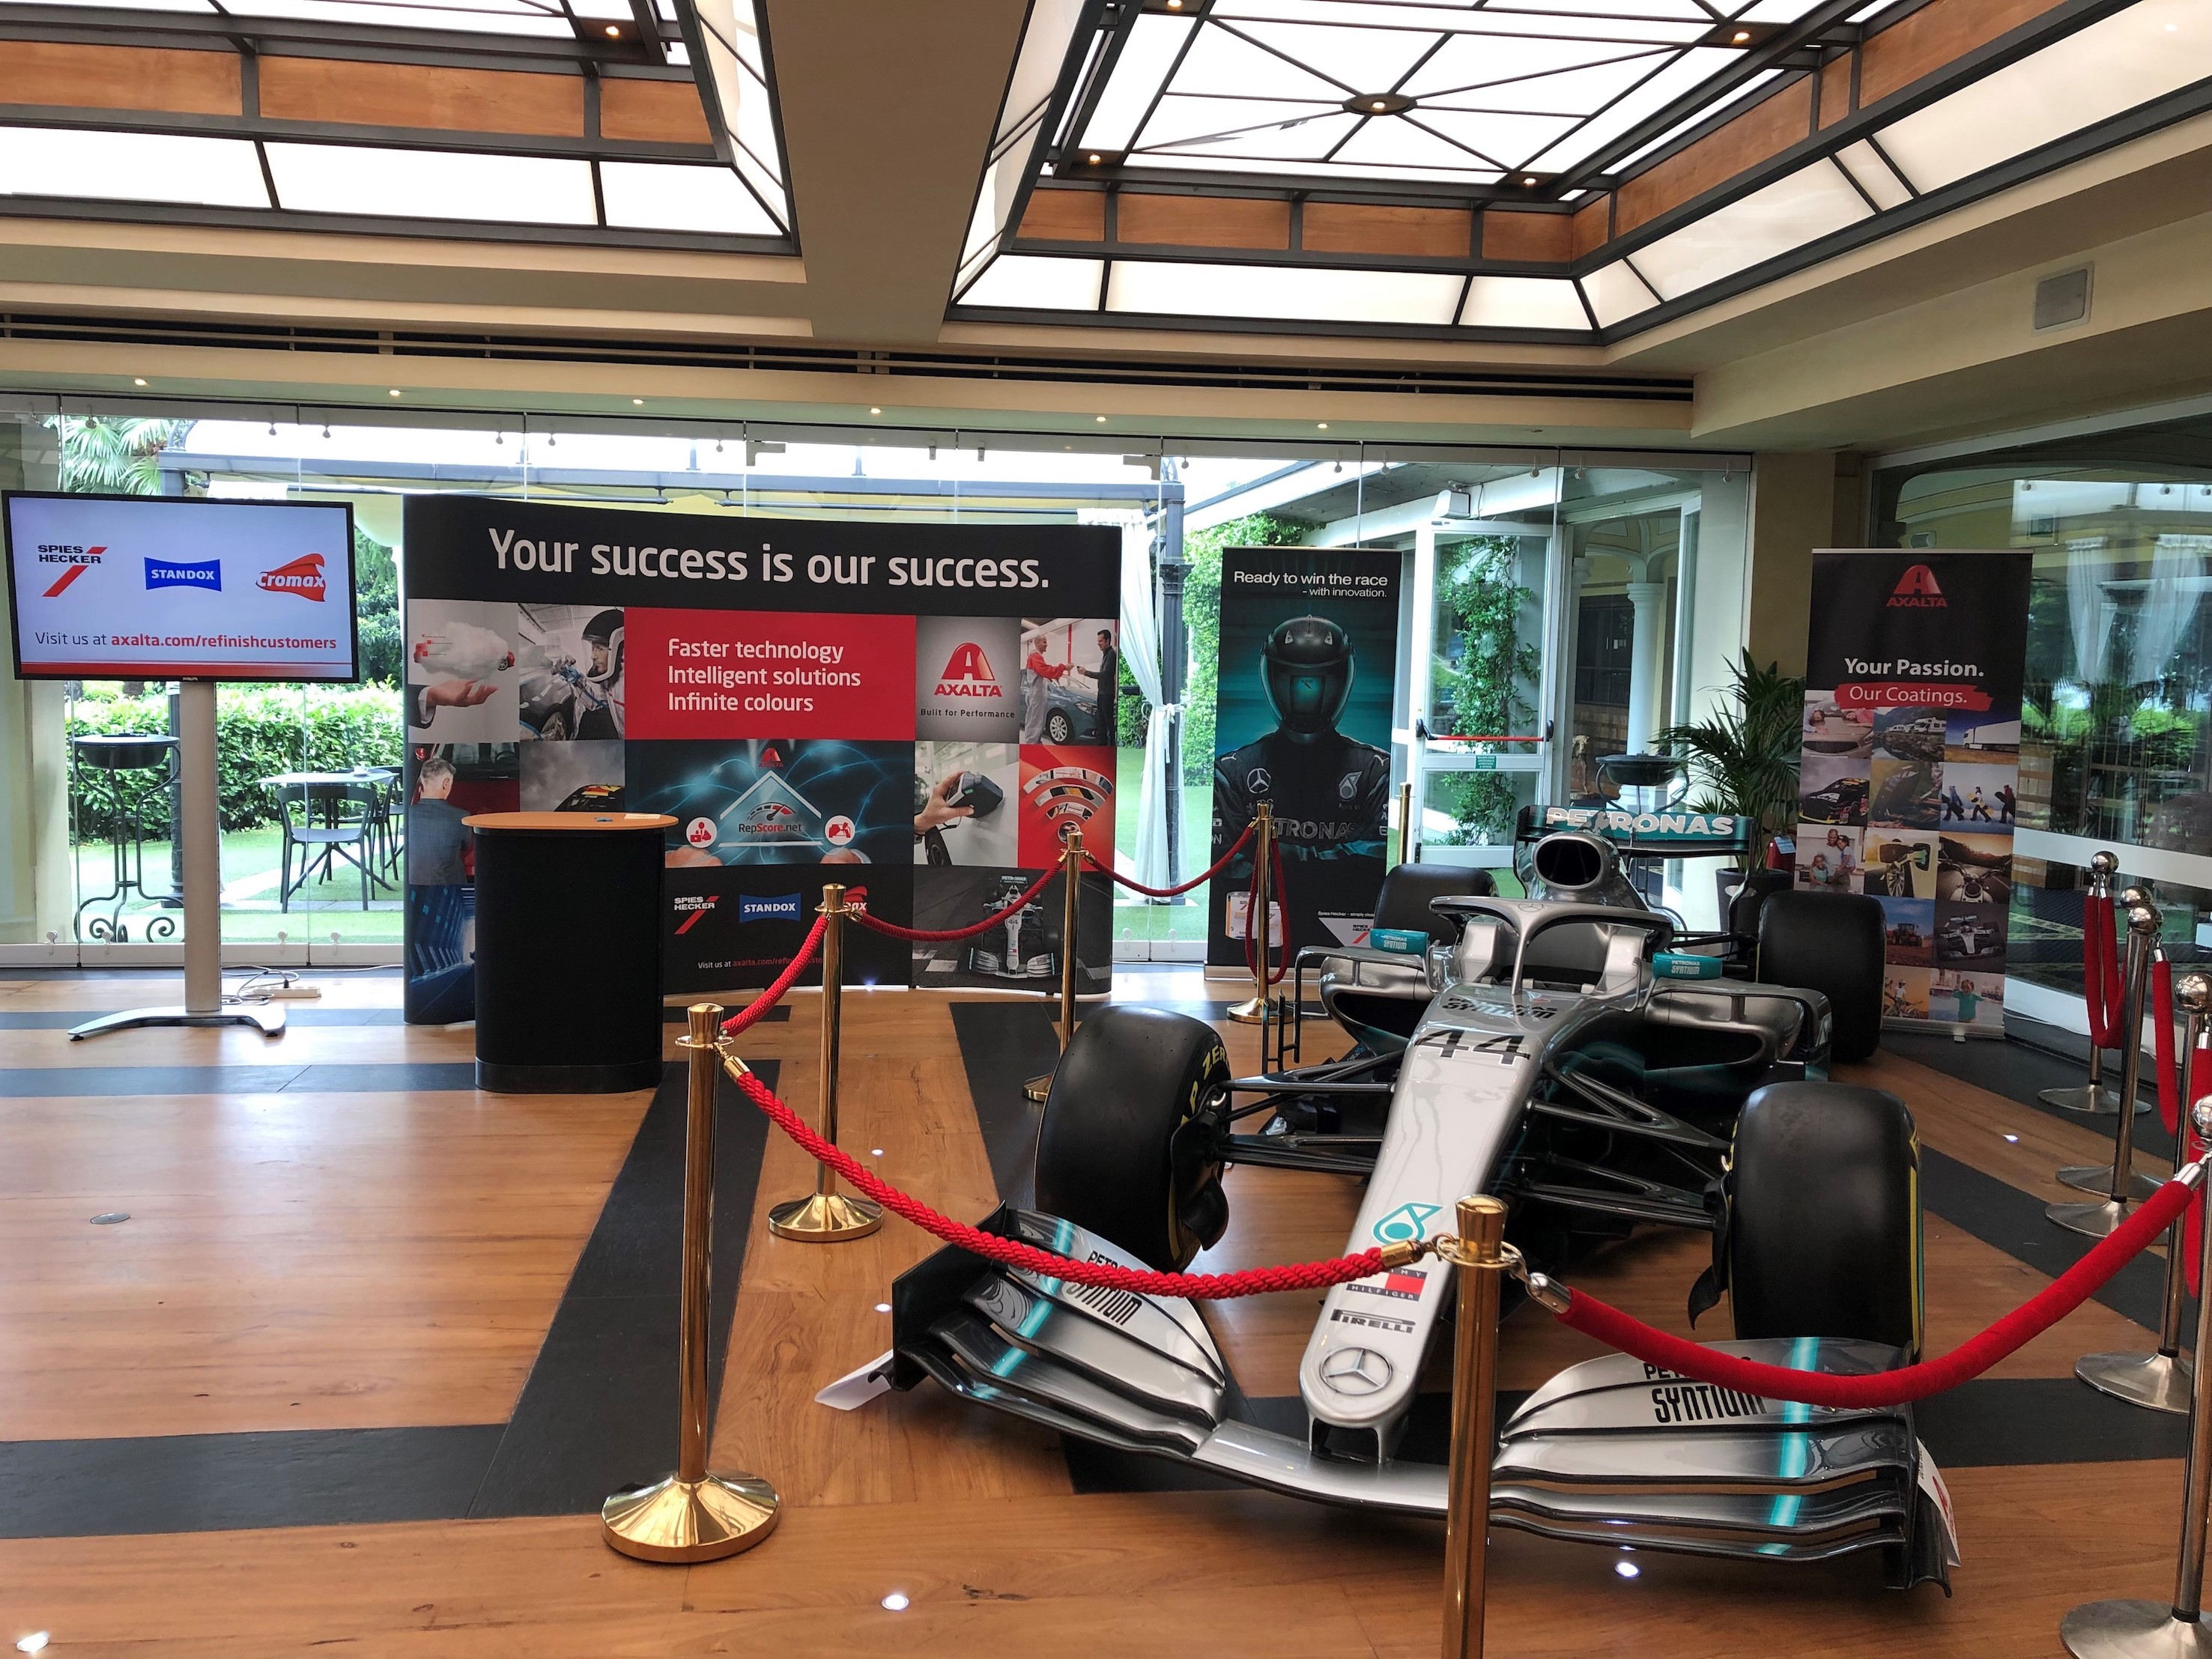 axalta-showcases-latest-innovations-at-ibis-global-summit-2019-in-milan